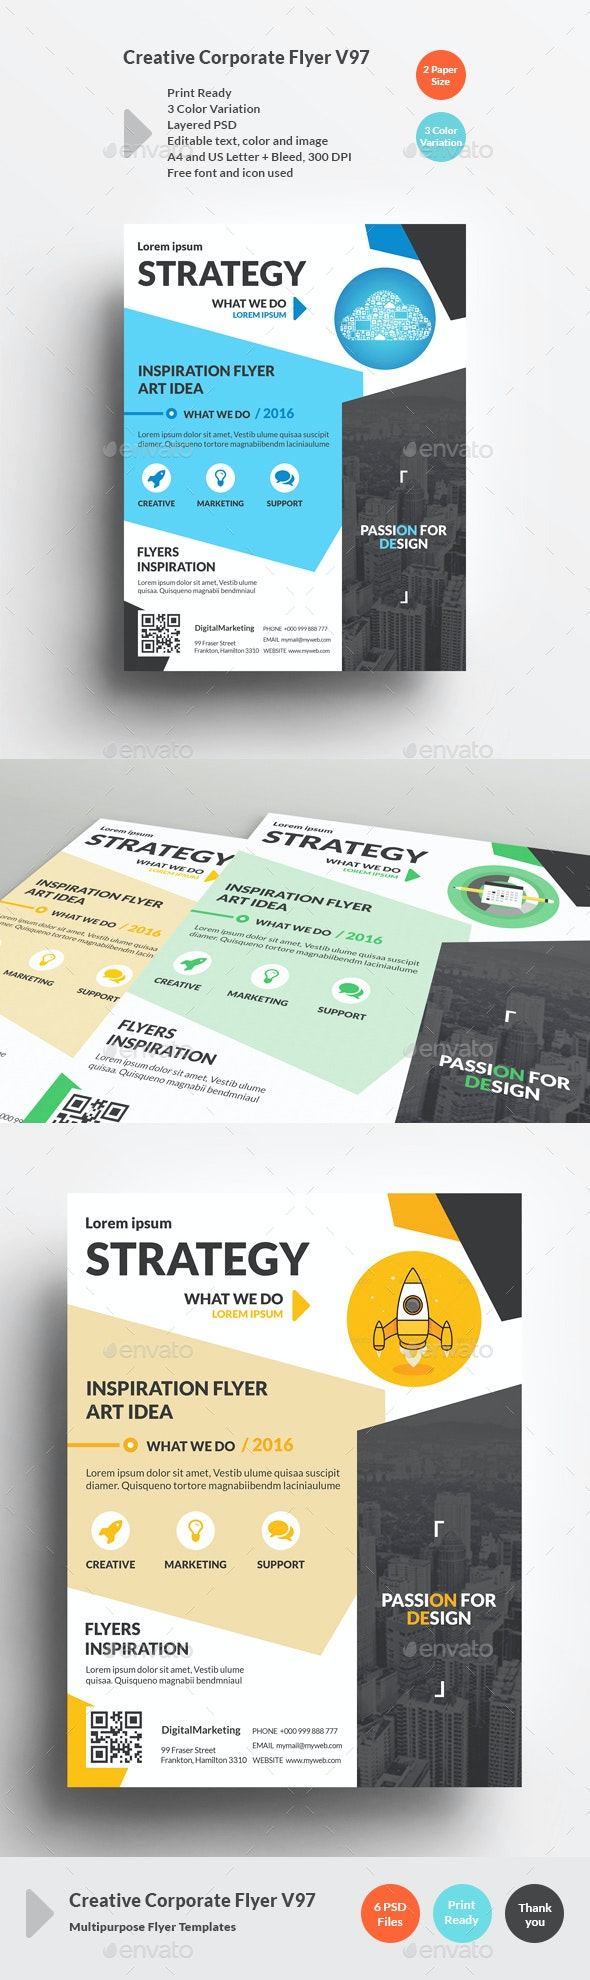 Creative Corporate Flyer V97 - Corporate Flyers